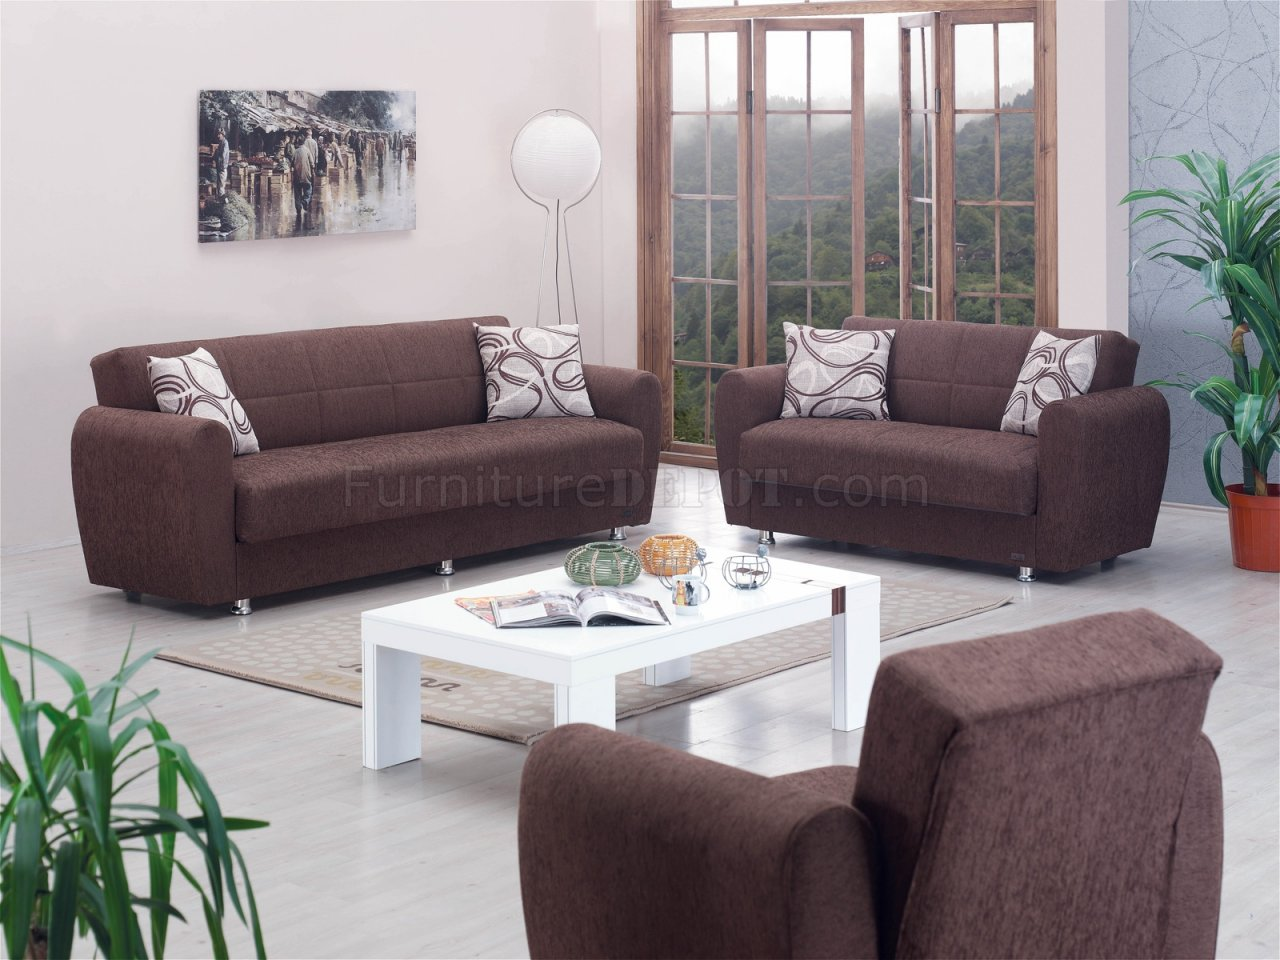 sectional sofas boston ugly sofa slipcovers reviews bed and loveseat set in brown fabric w options